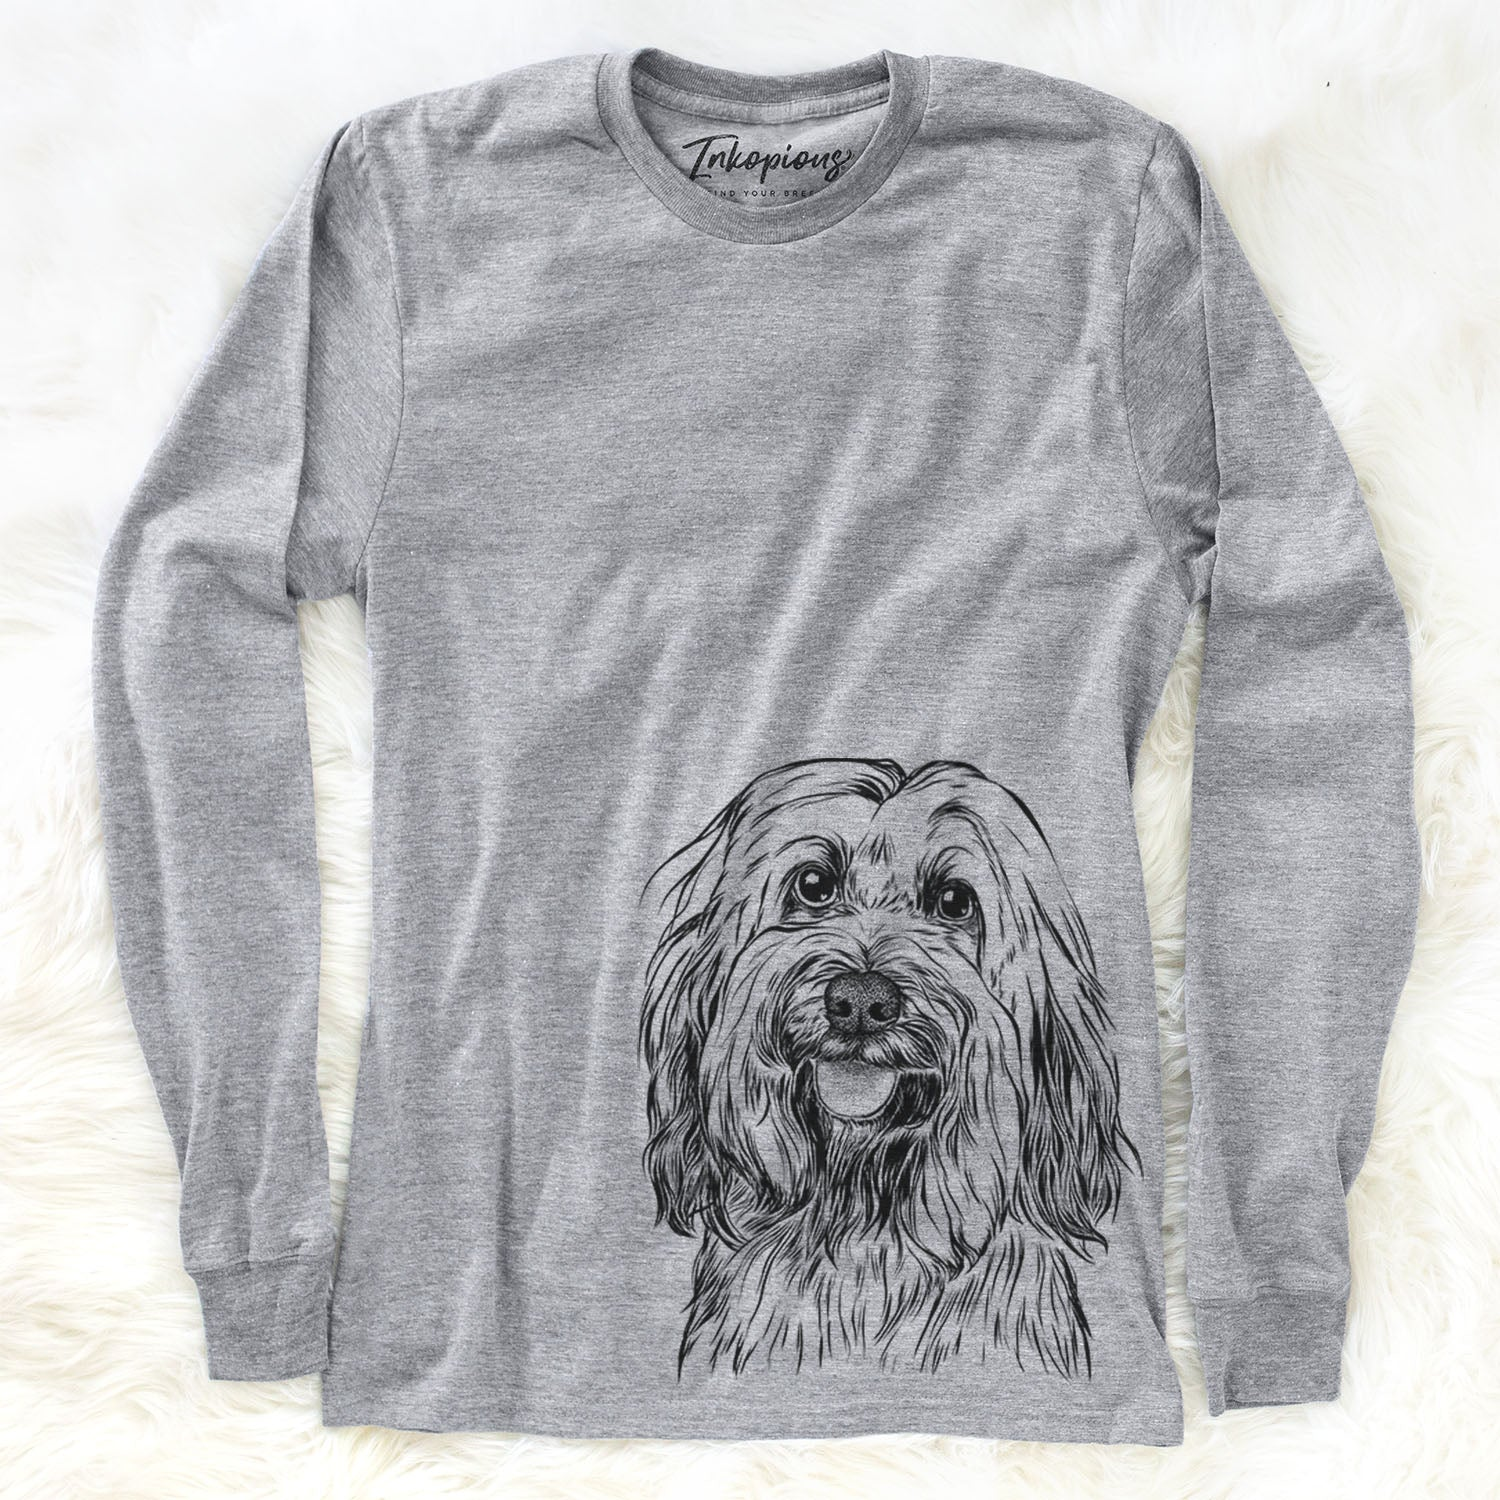 Rime the Tibetan Terrier - Long Sleeve Crewneck